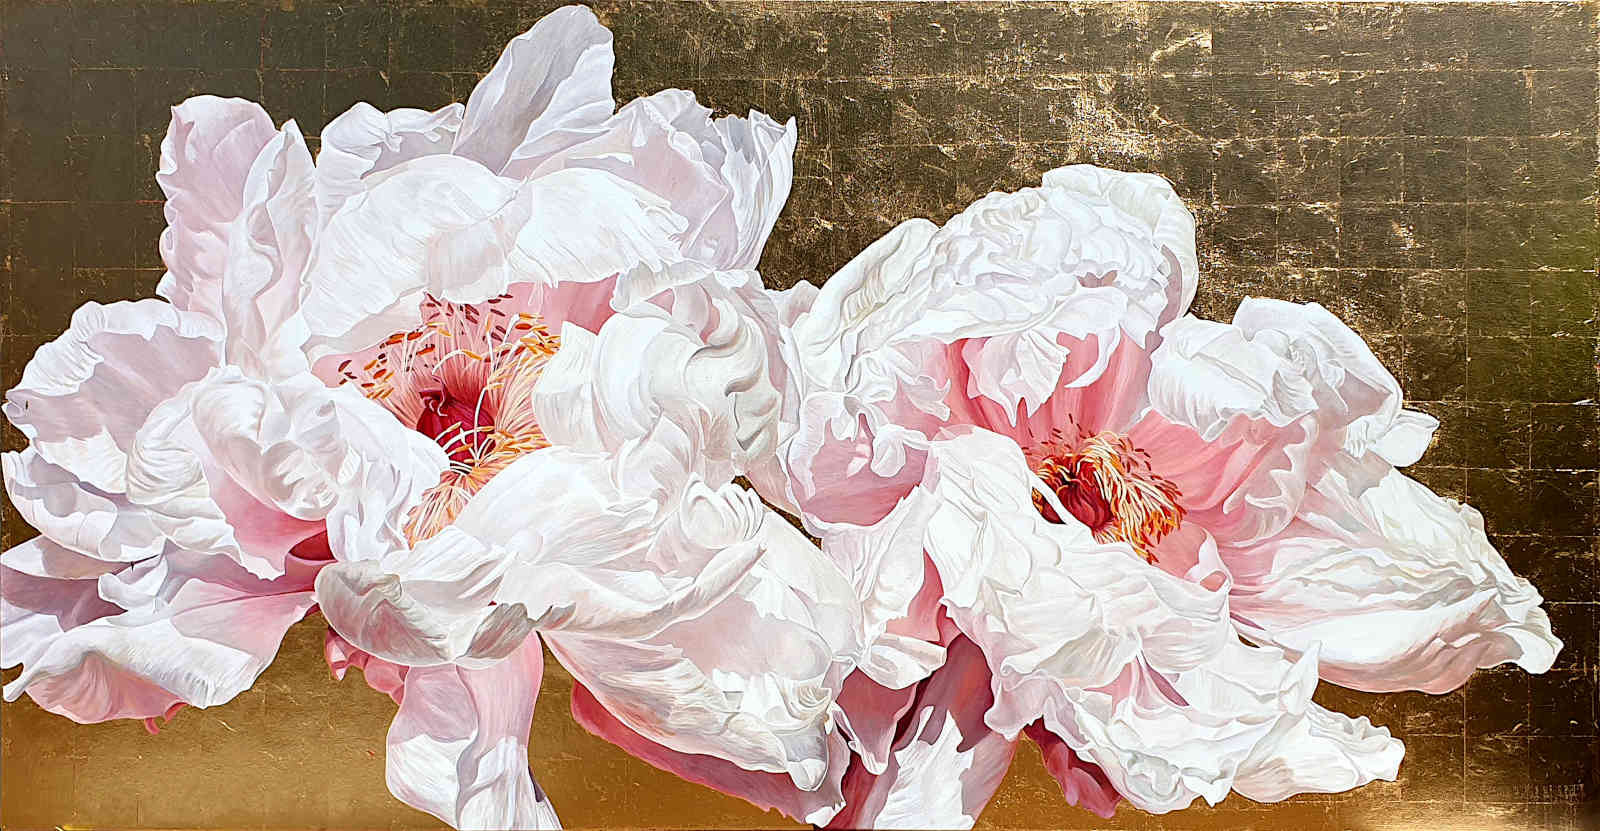 An original painting of palest pink tree peonies on red gold leaf by UK artist Sarah Caswell